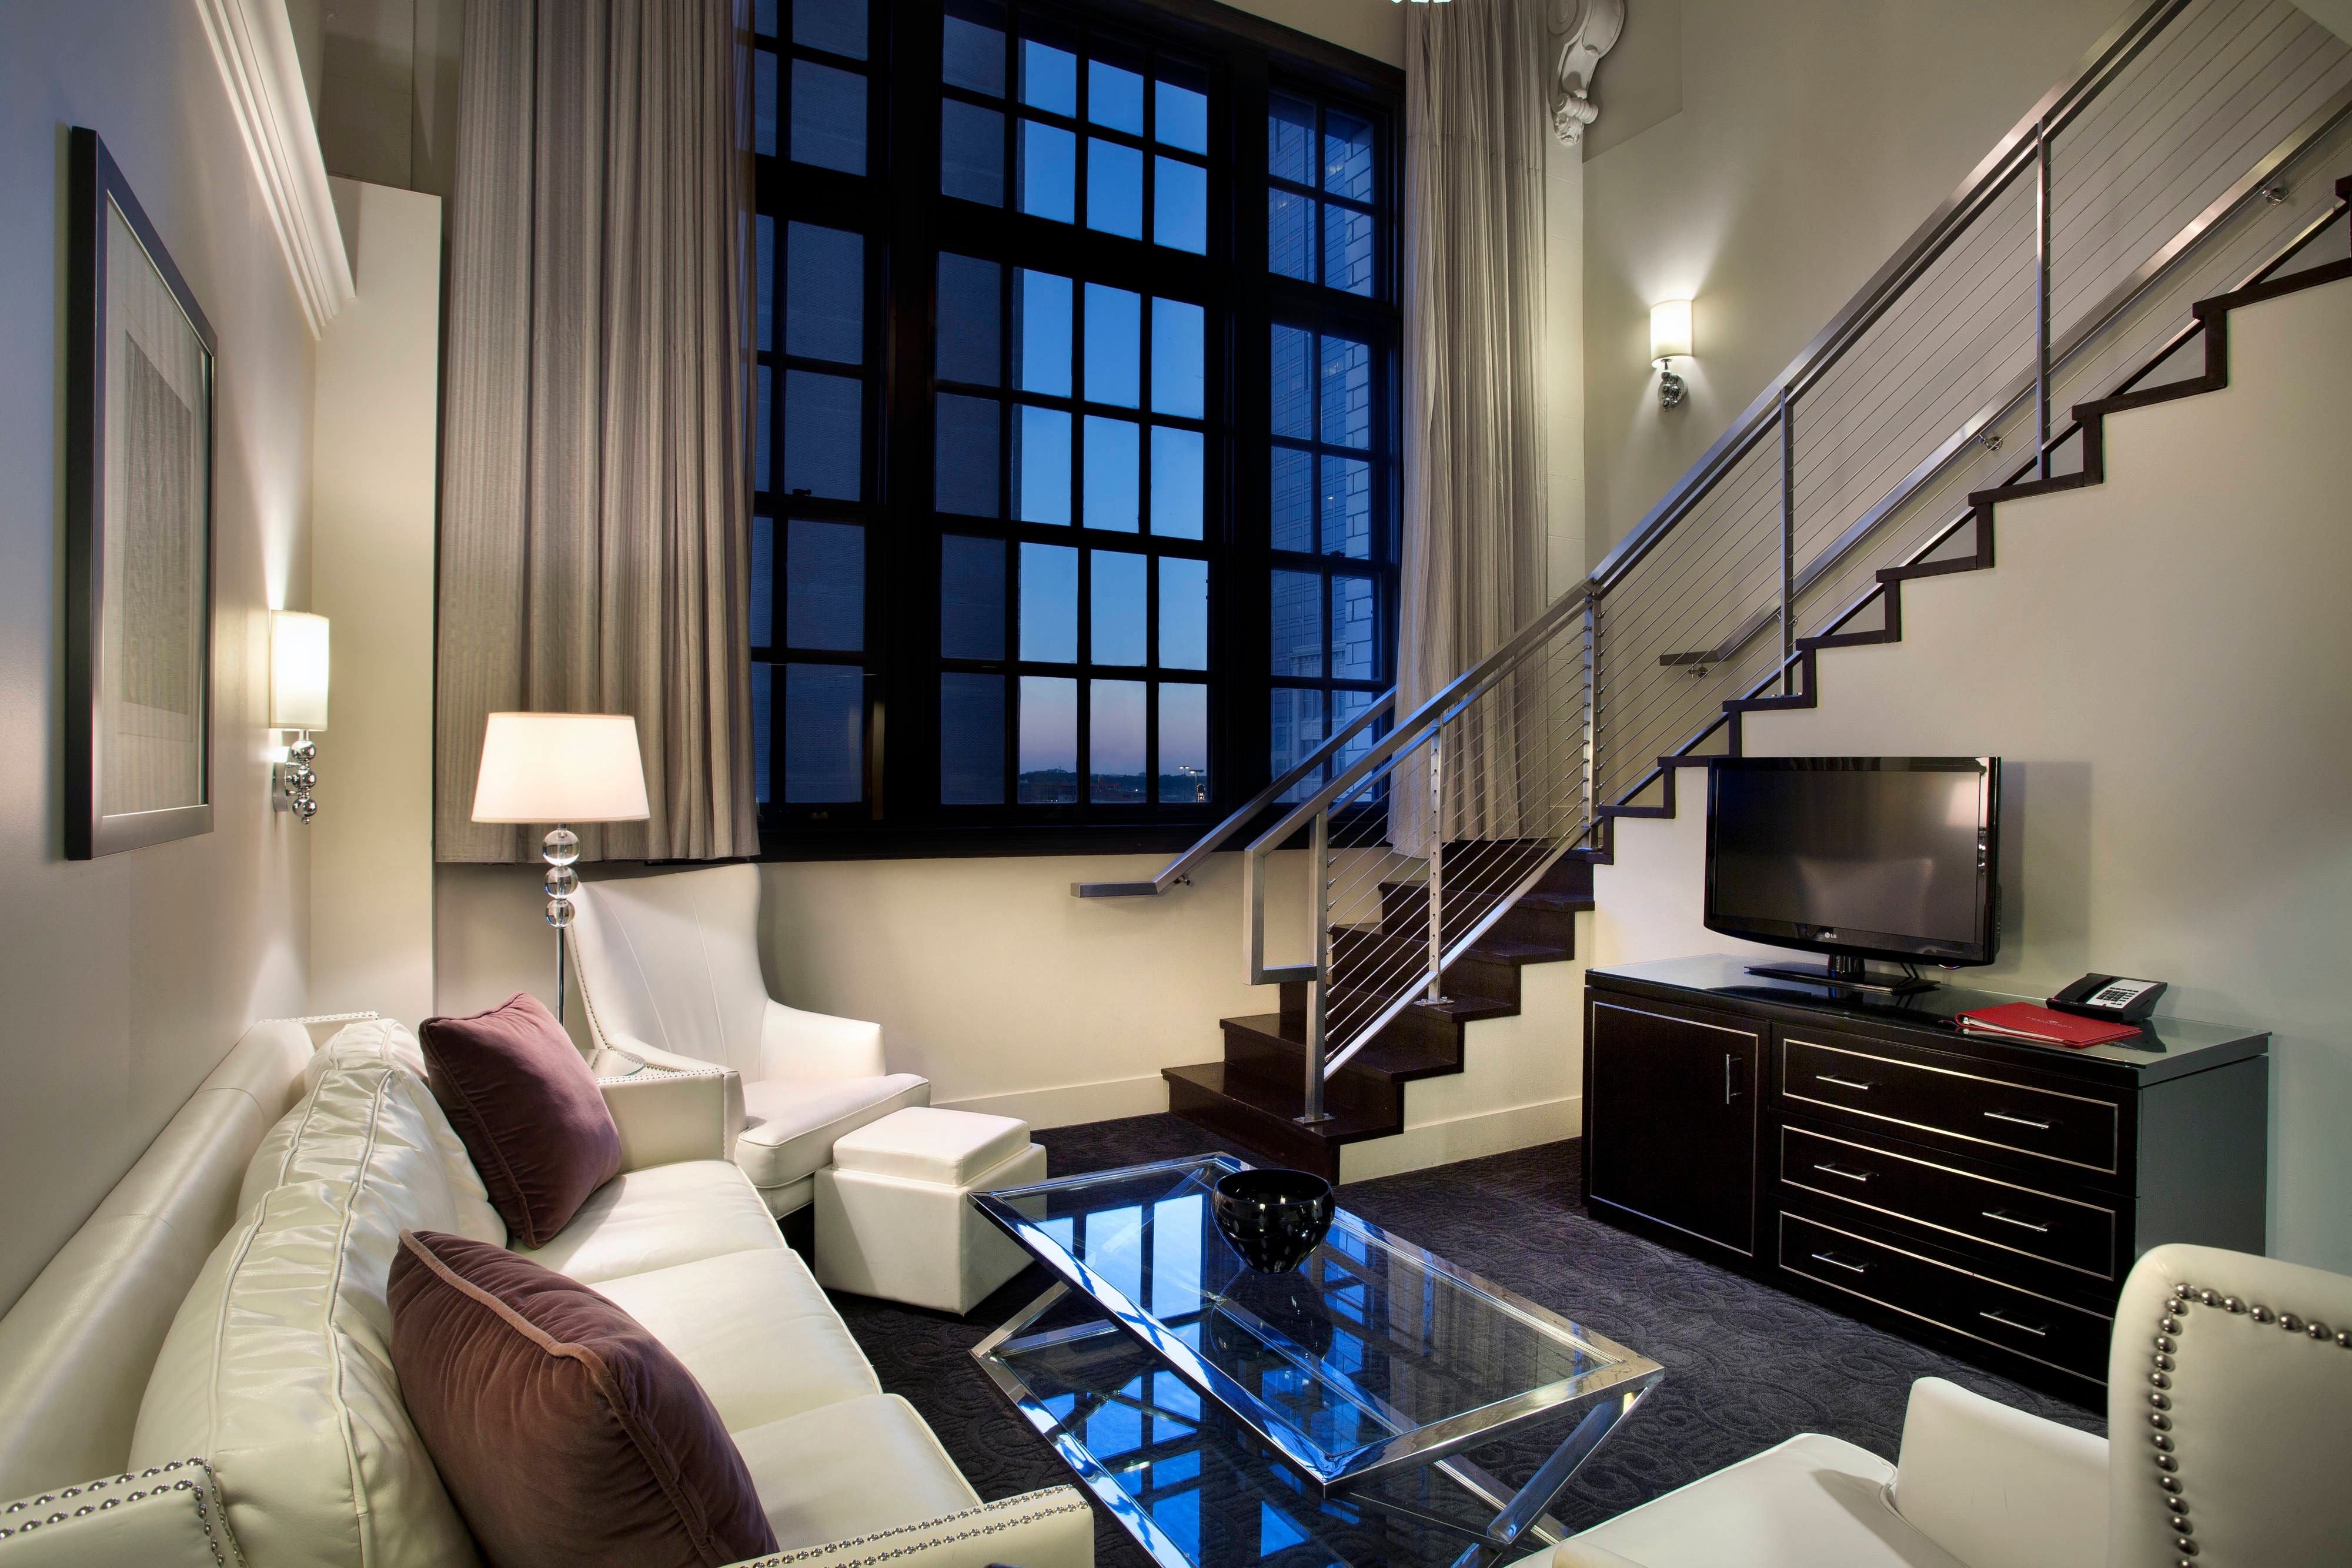 On the first floor of this Bi-Level Loft Suite, you will find ample seating.